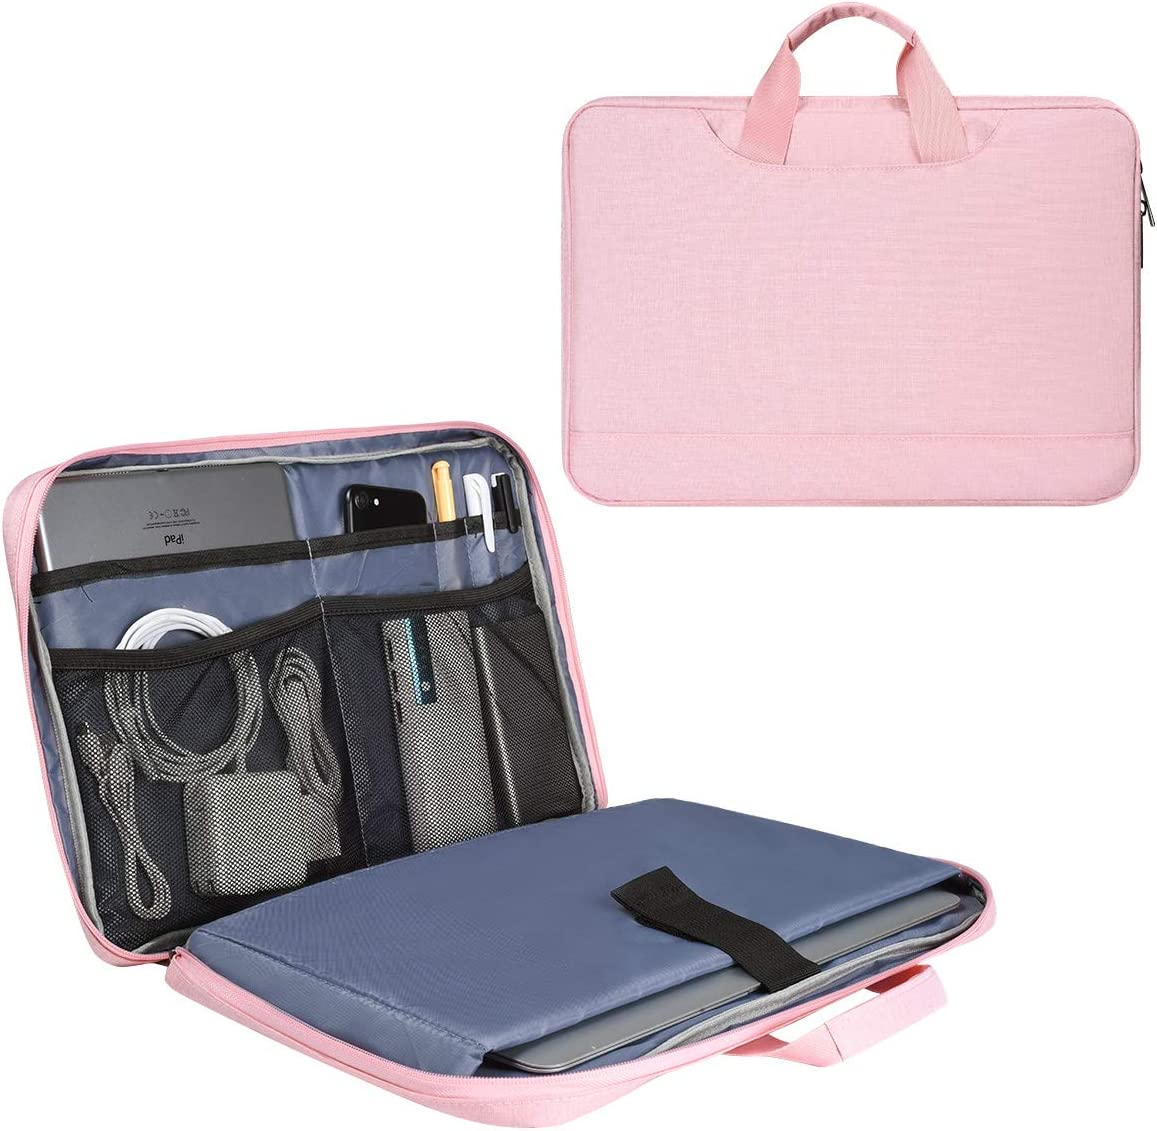 15.6 Inch Laptop Briefcase Bag for Women Ladies Bag with Accessories Organizer for Dell Inspiron 15, HP Envy X360/Pavilion 15.6, Acer Aspire 15, Lenovo IdeaPad 3 15.6 ASUS MSI MacBook 15 Case, Pink